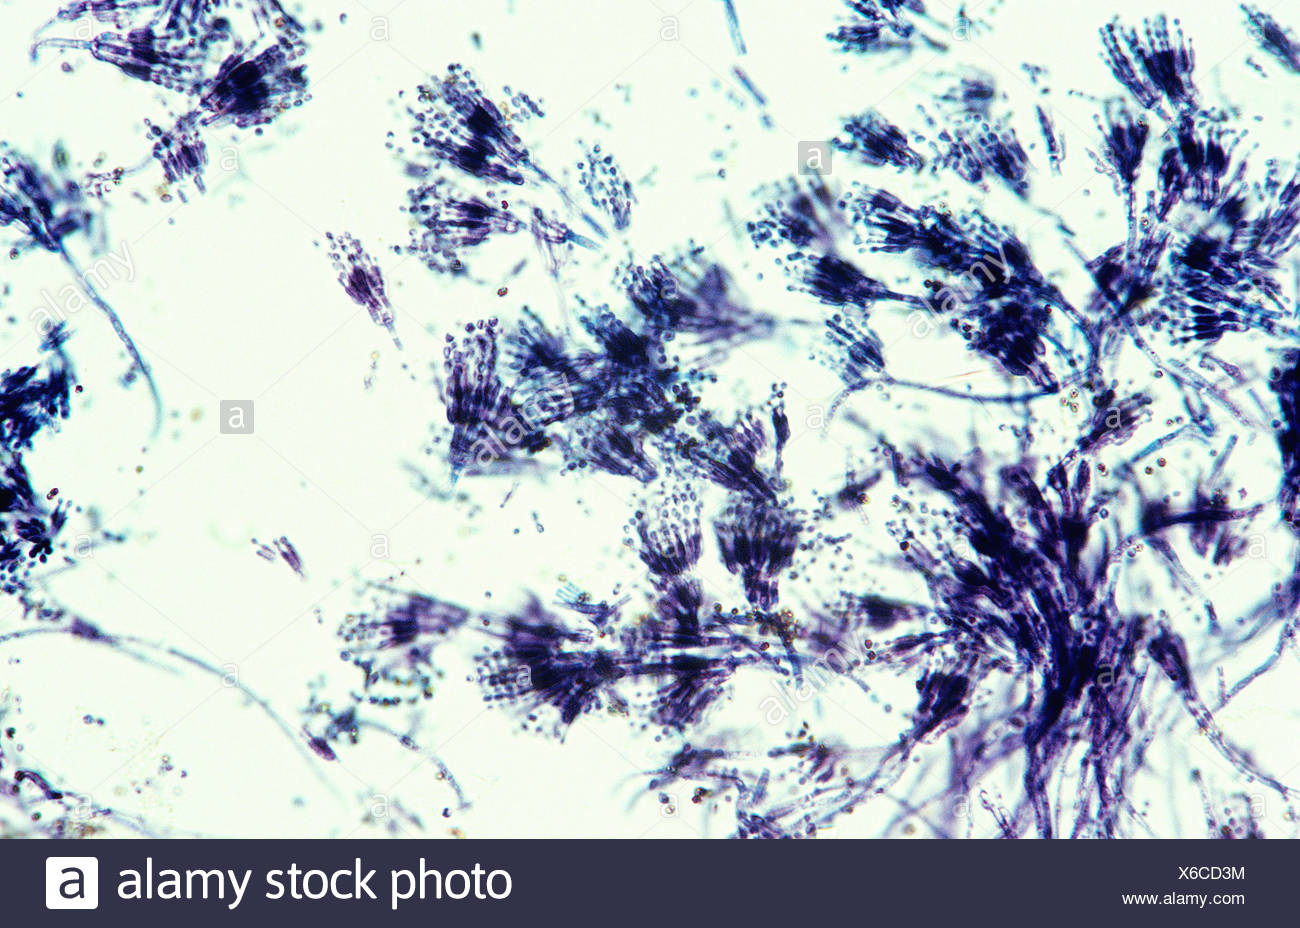 Penicillium sp asexual reproduction pictures